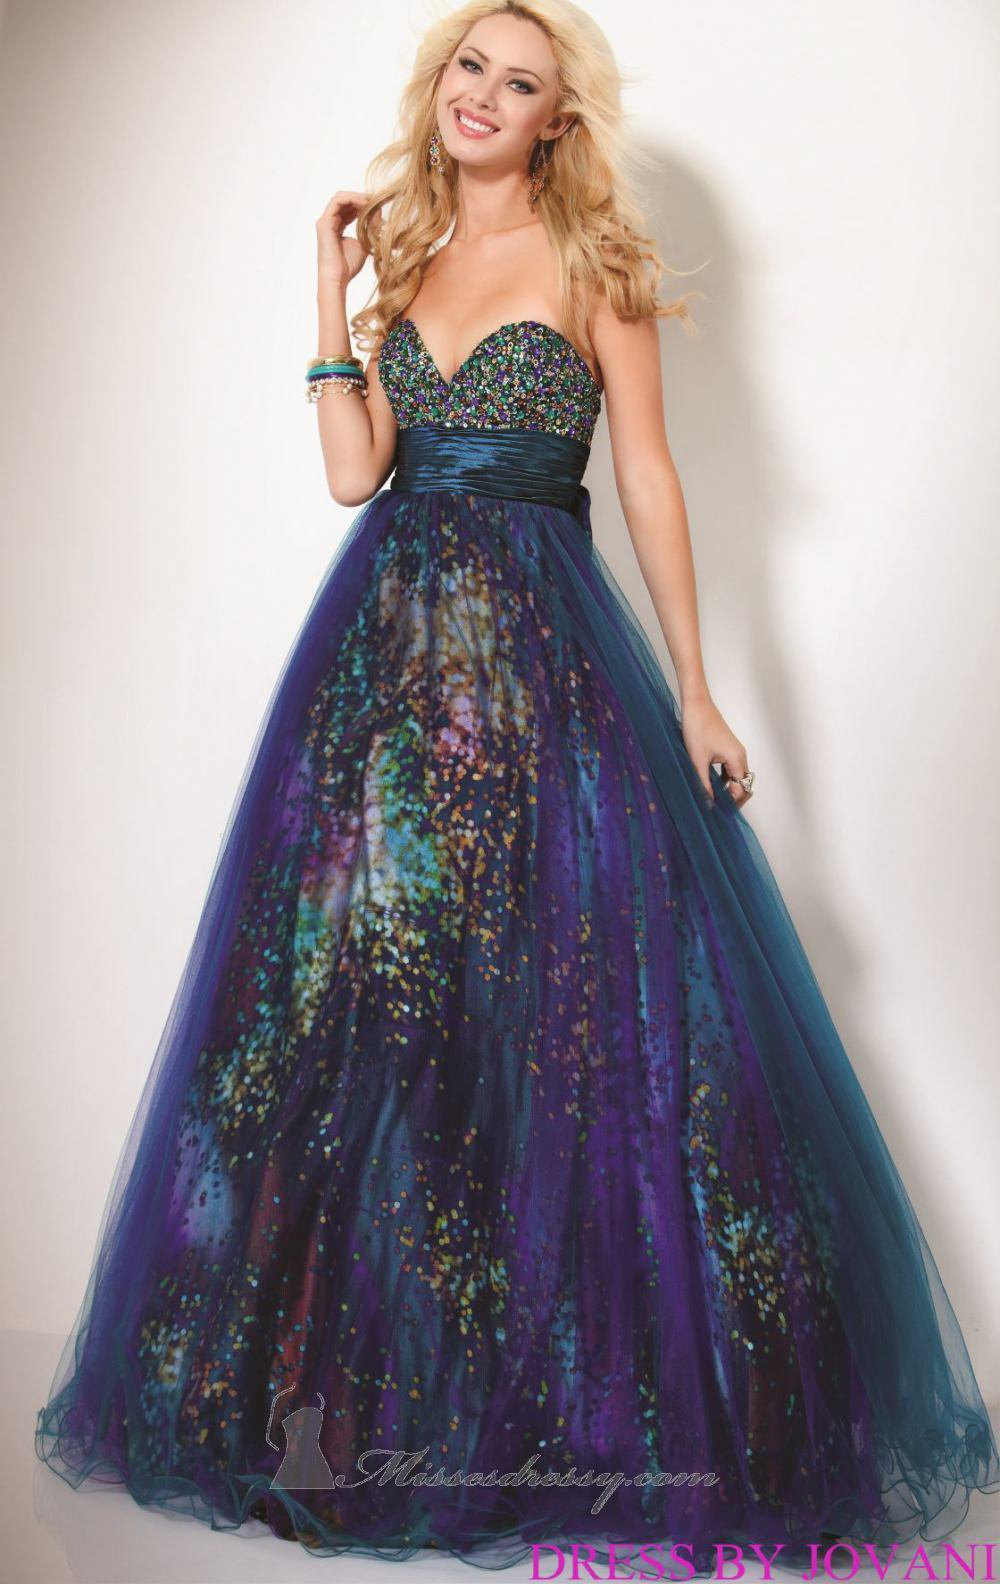 Jovani 8935